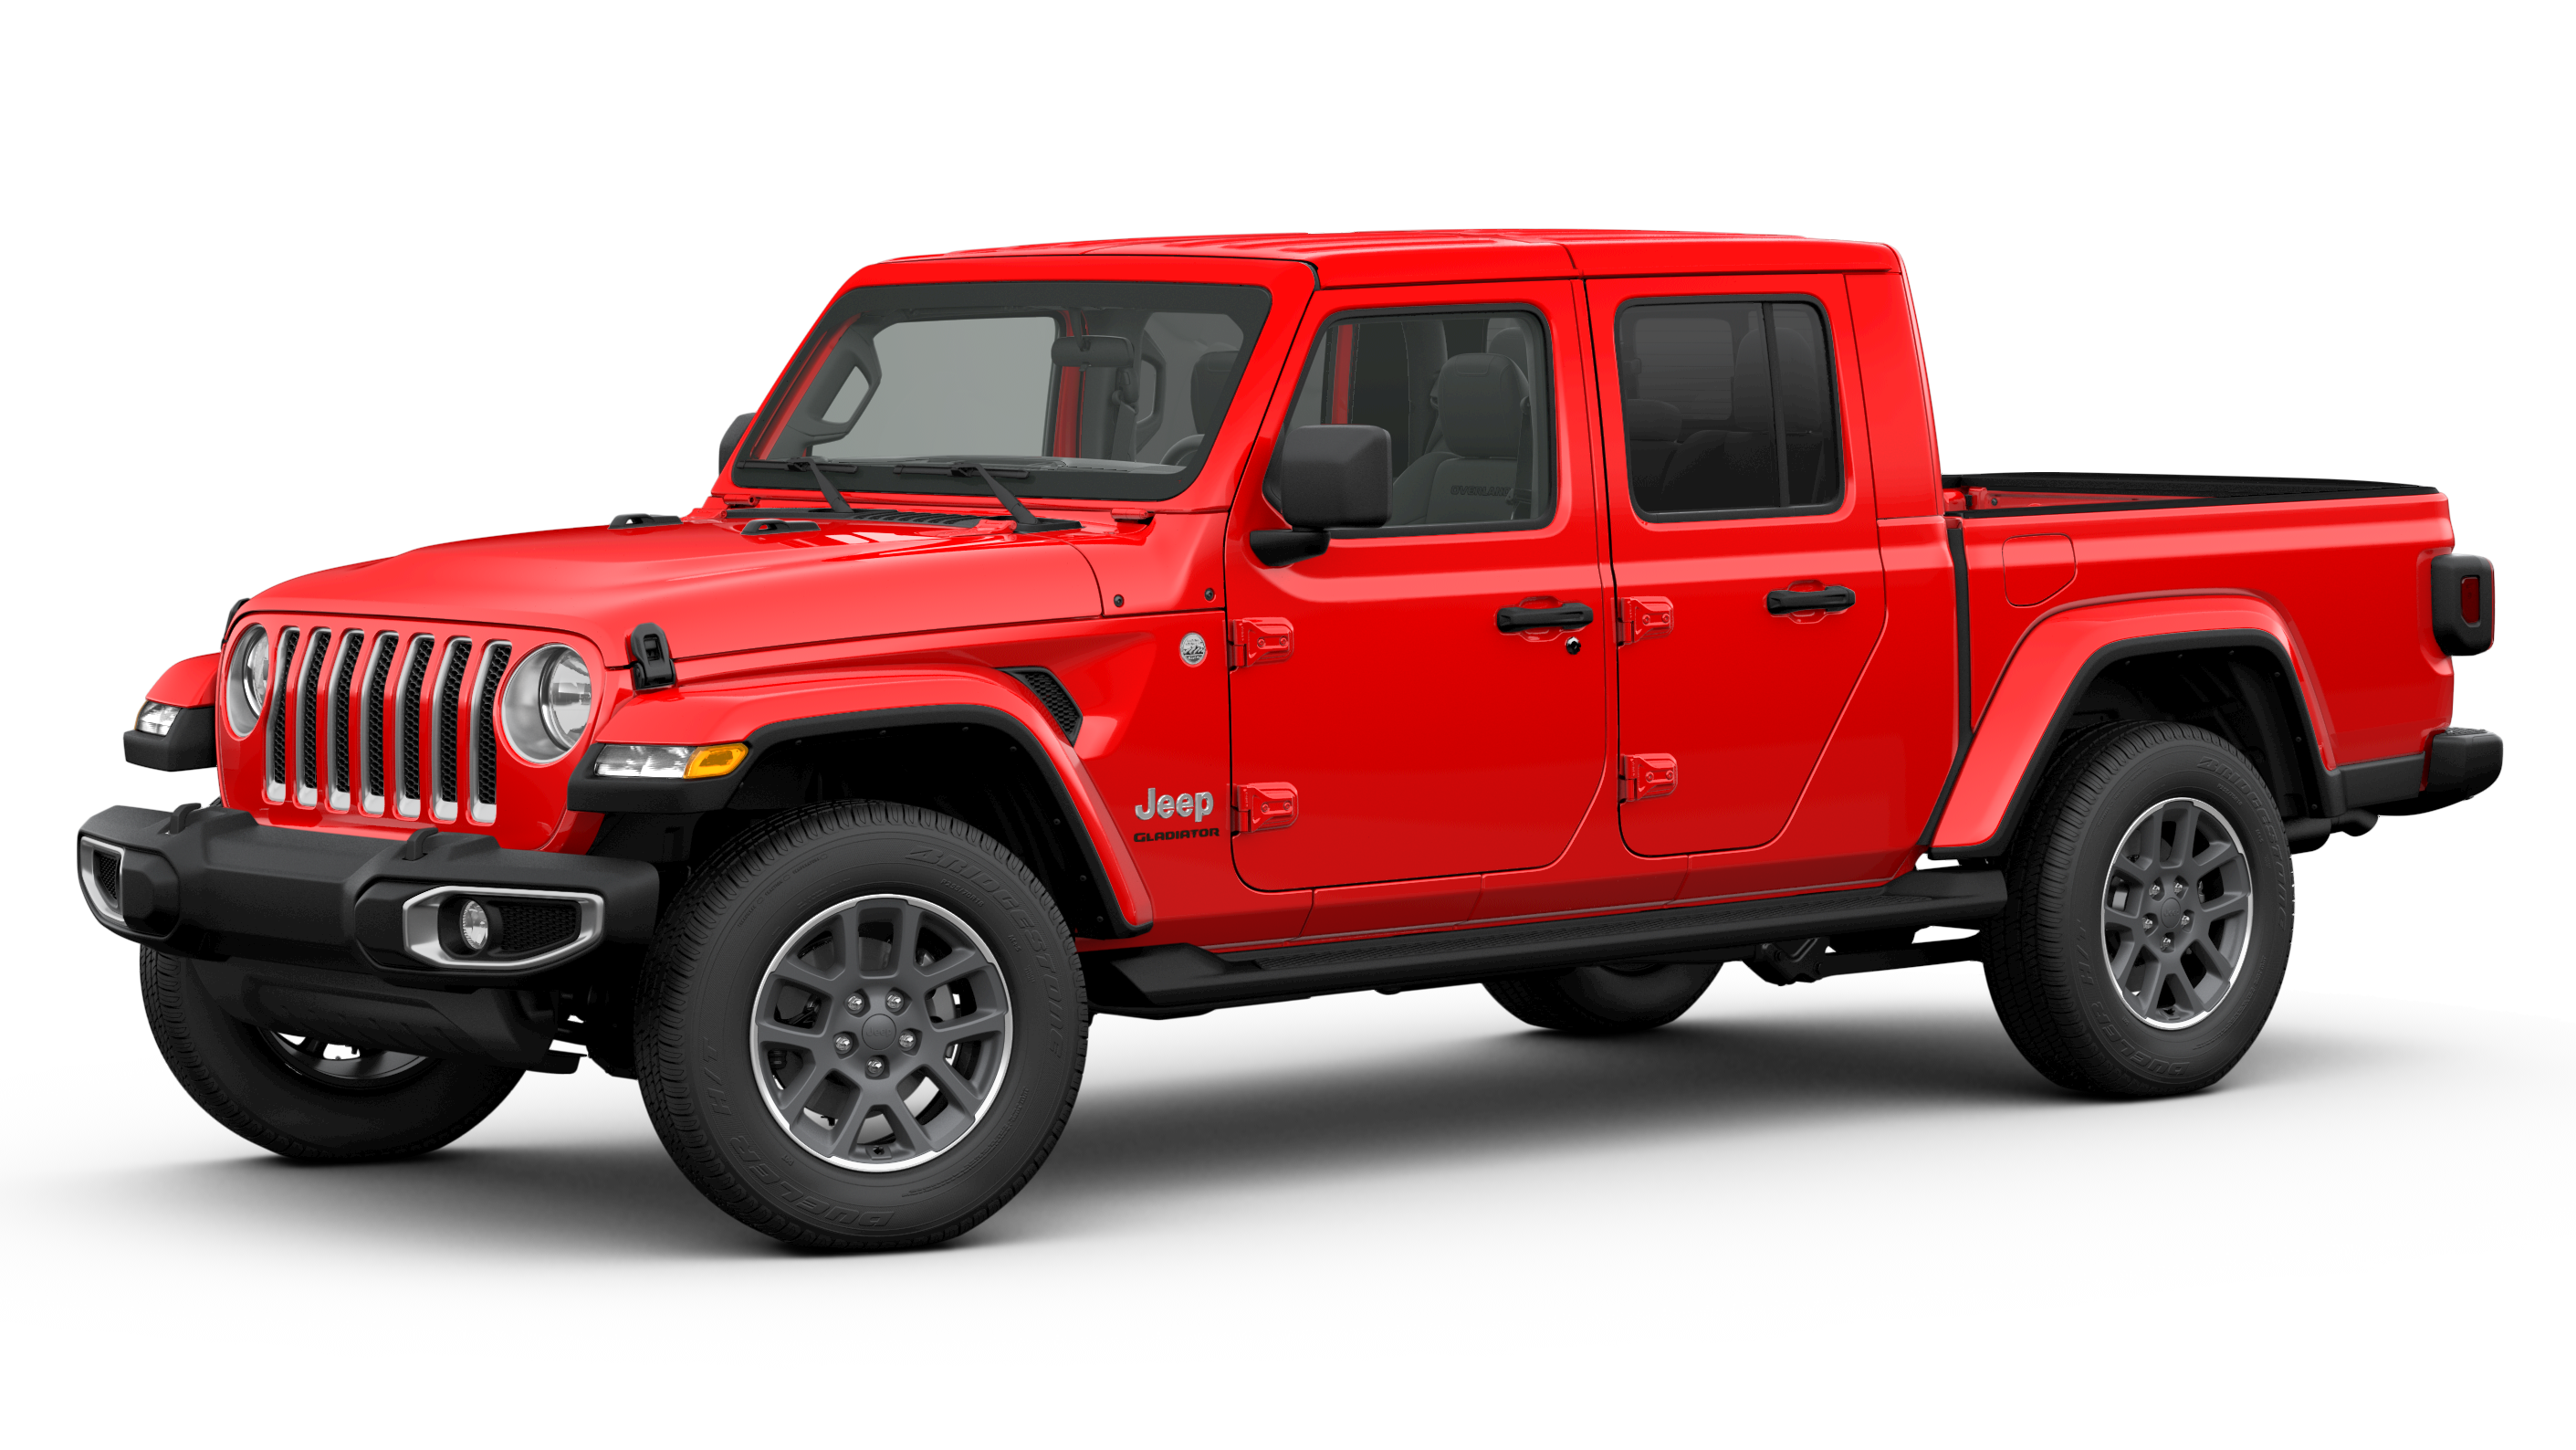 2020 jeep gladiator truck | lake norman chrysler jeep dodge